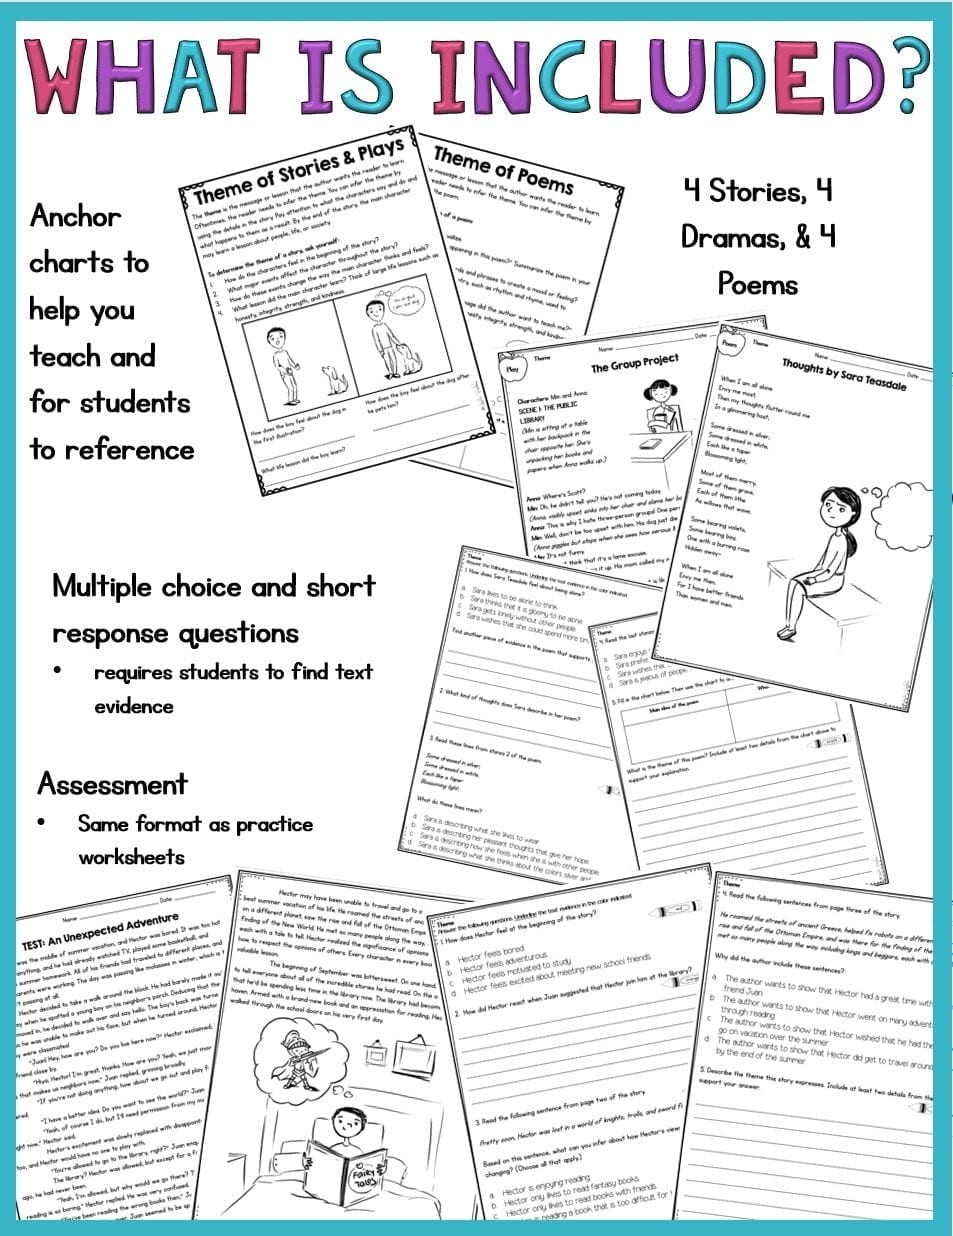 5th Grade theme Worksheets theme In Stories Plays and Poems 4th Grade Rl 4 2 and 5th Grade Rl 5 2